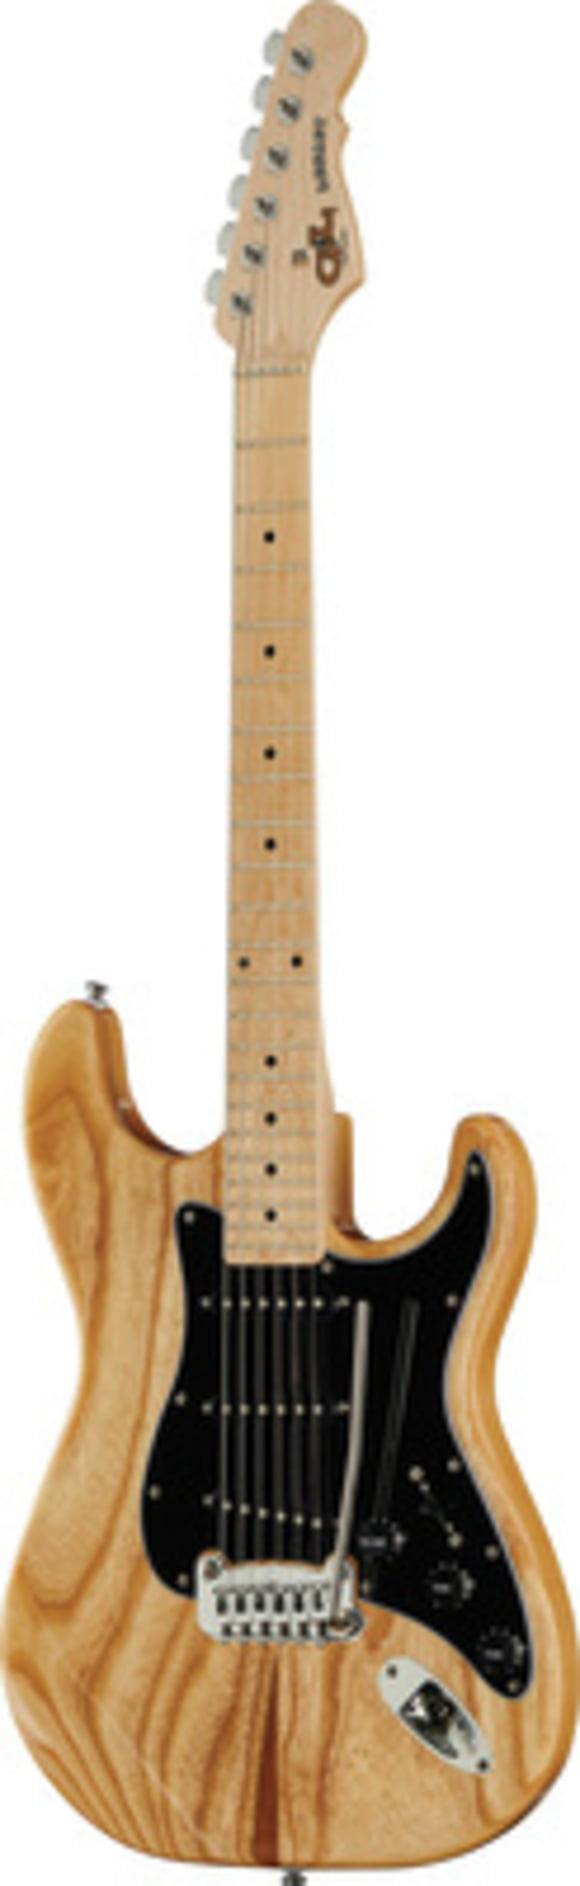 Tribute Legacy Natural MP G&L